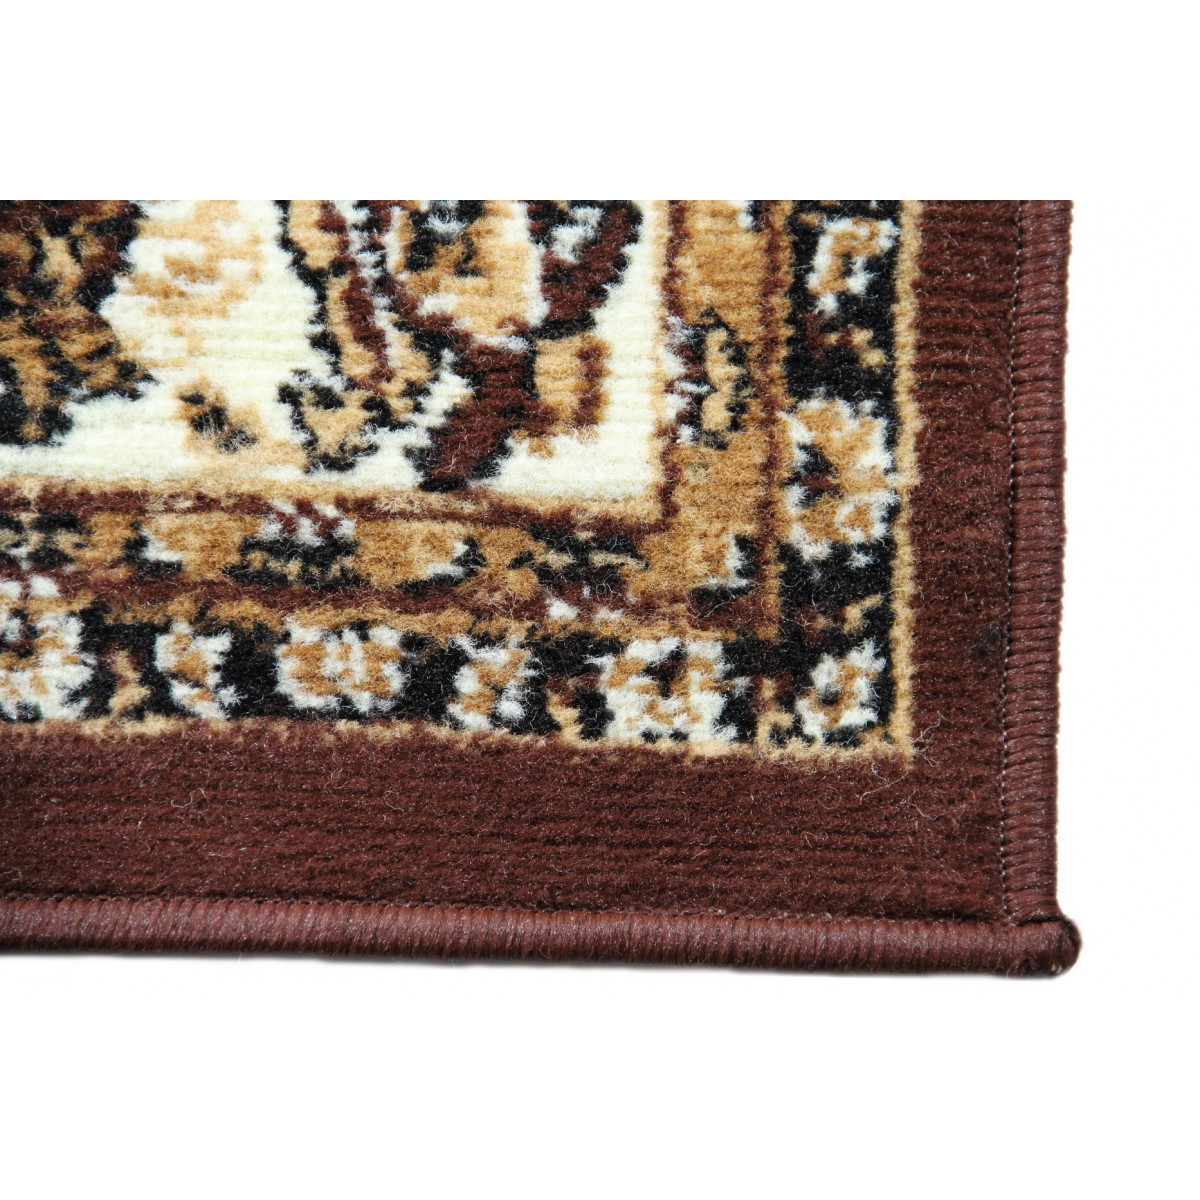 TEHERAN-T 117/brown